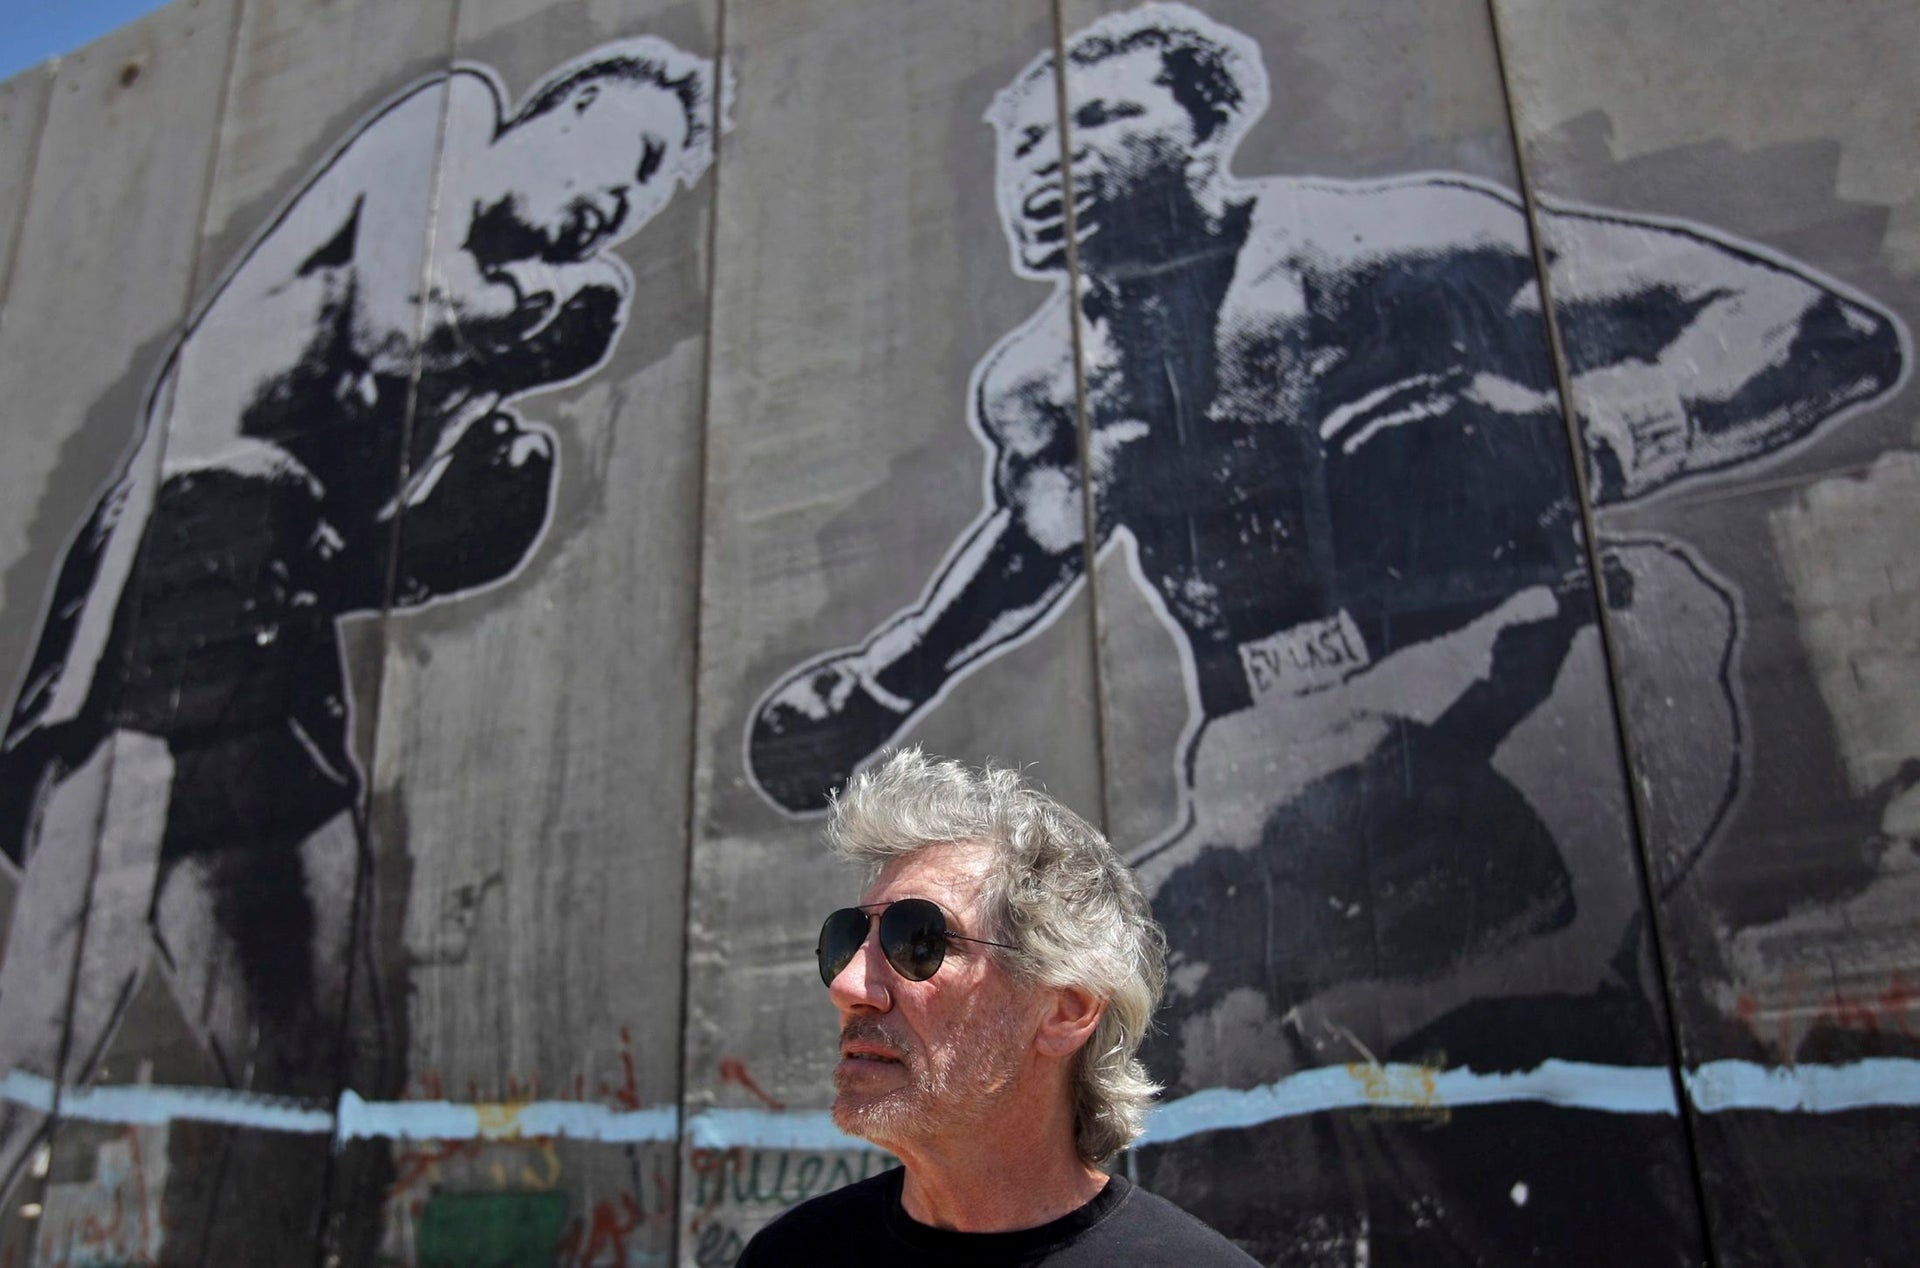 Composer and former bassist and singer of British rock band Pink Floyd, Roger Waters, is seen while touring Israel's separation barrier in the West Bank refugee camp of Aida in Bethlehem, Tuesday, June 2, 2009. In an interview with The Associated Press, Waters denounced the wall as a land grab by Israel, said it must come down and promised to hold a concert on that spot if it does.